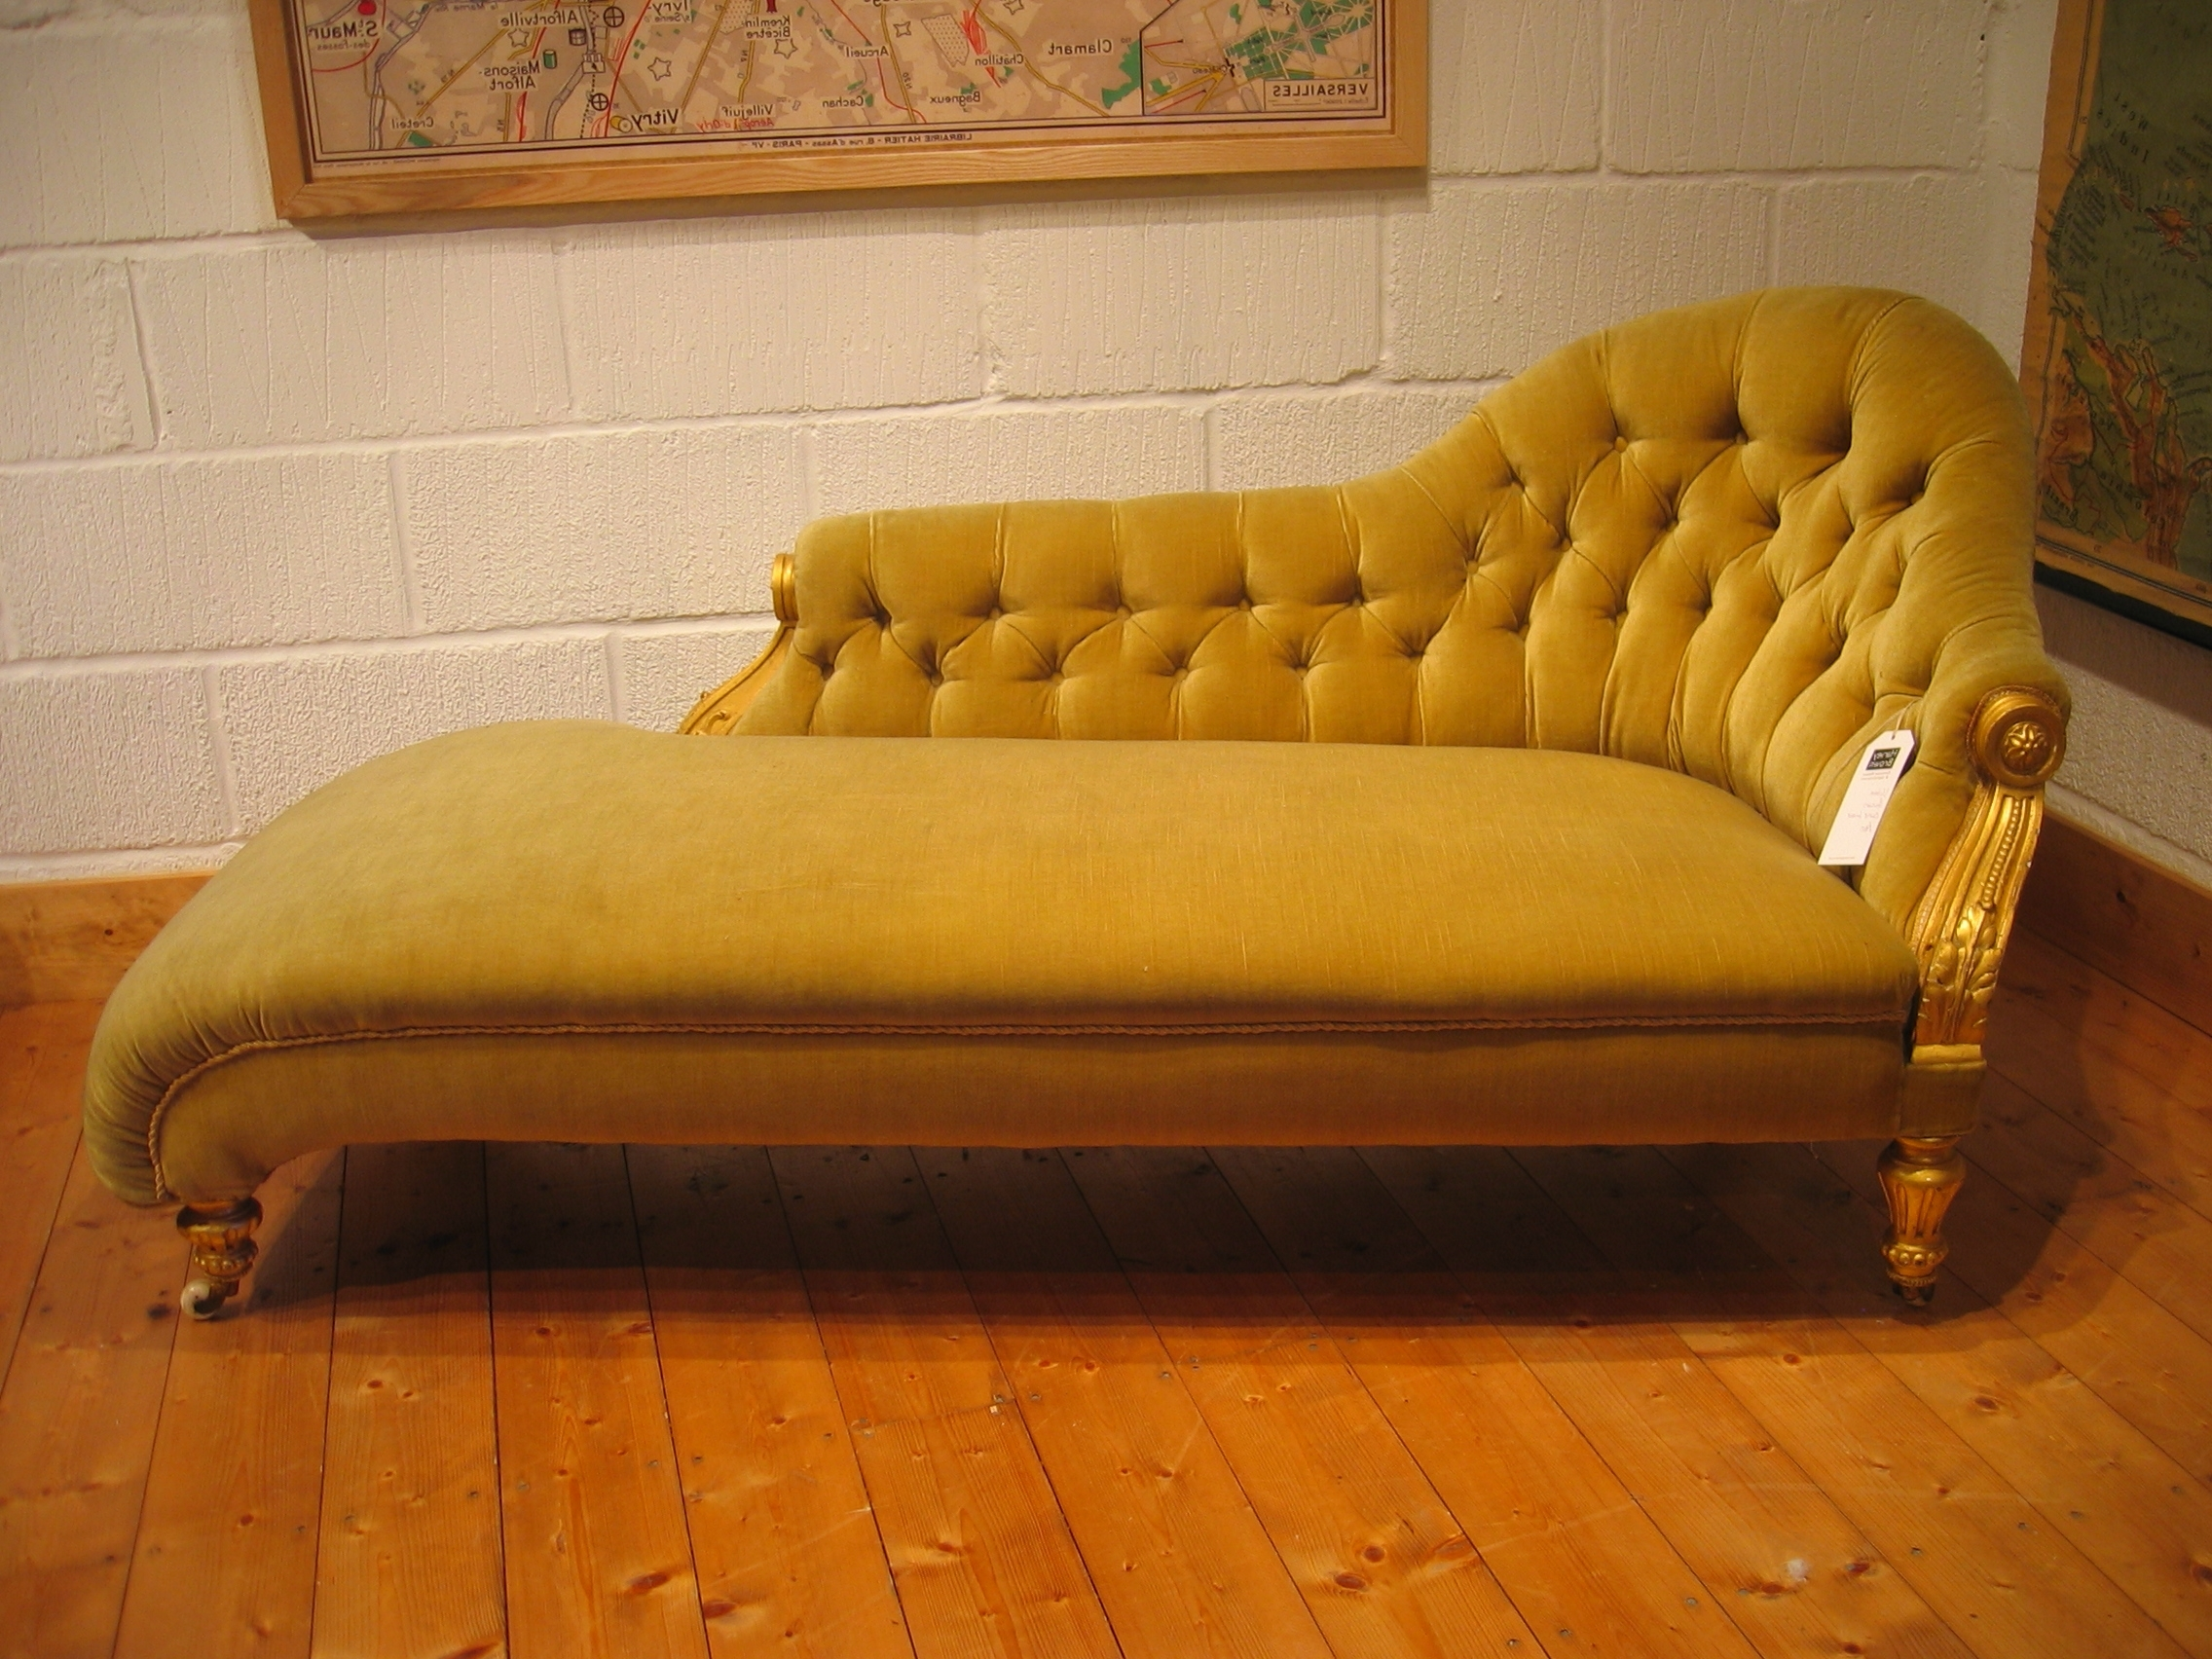 Yellow Chaise Lounge Chairs In Well Liked Yellow Color Antique Victorian Chaise Lounge Sofa Bed With Wooden (View 12 of 15)